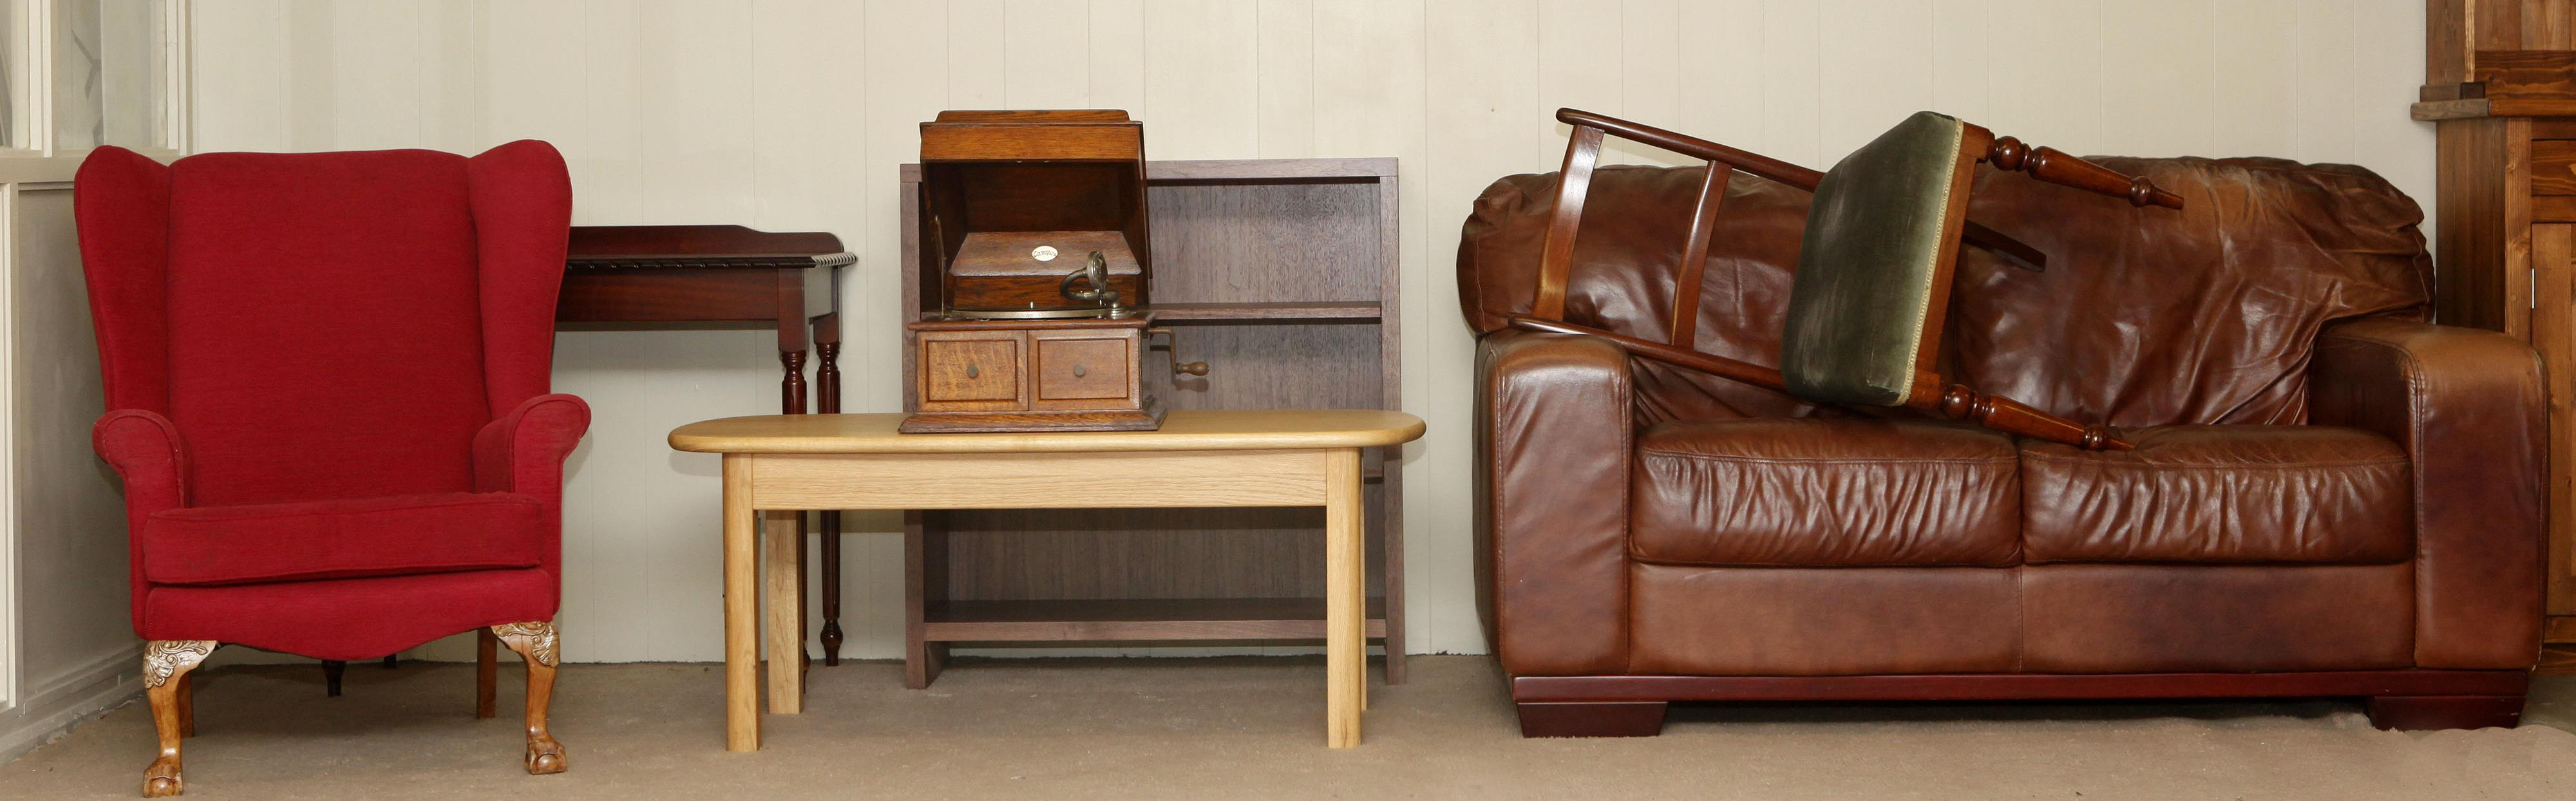 Morans Furniture Stores Second Hand New Antique Furniture